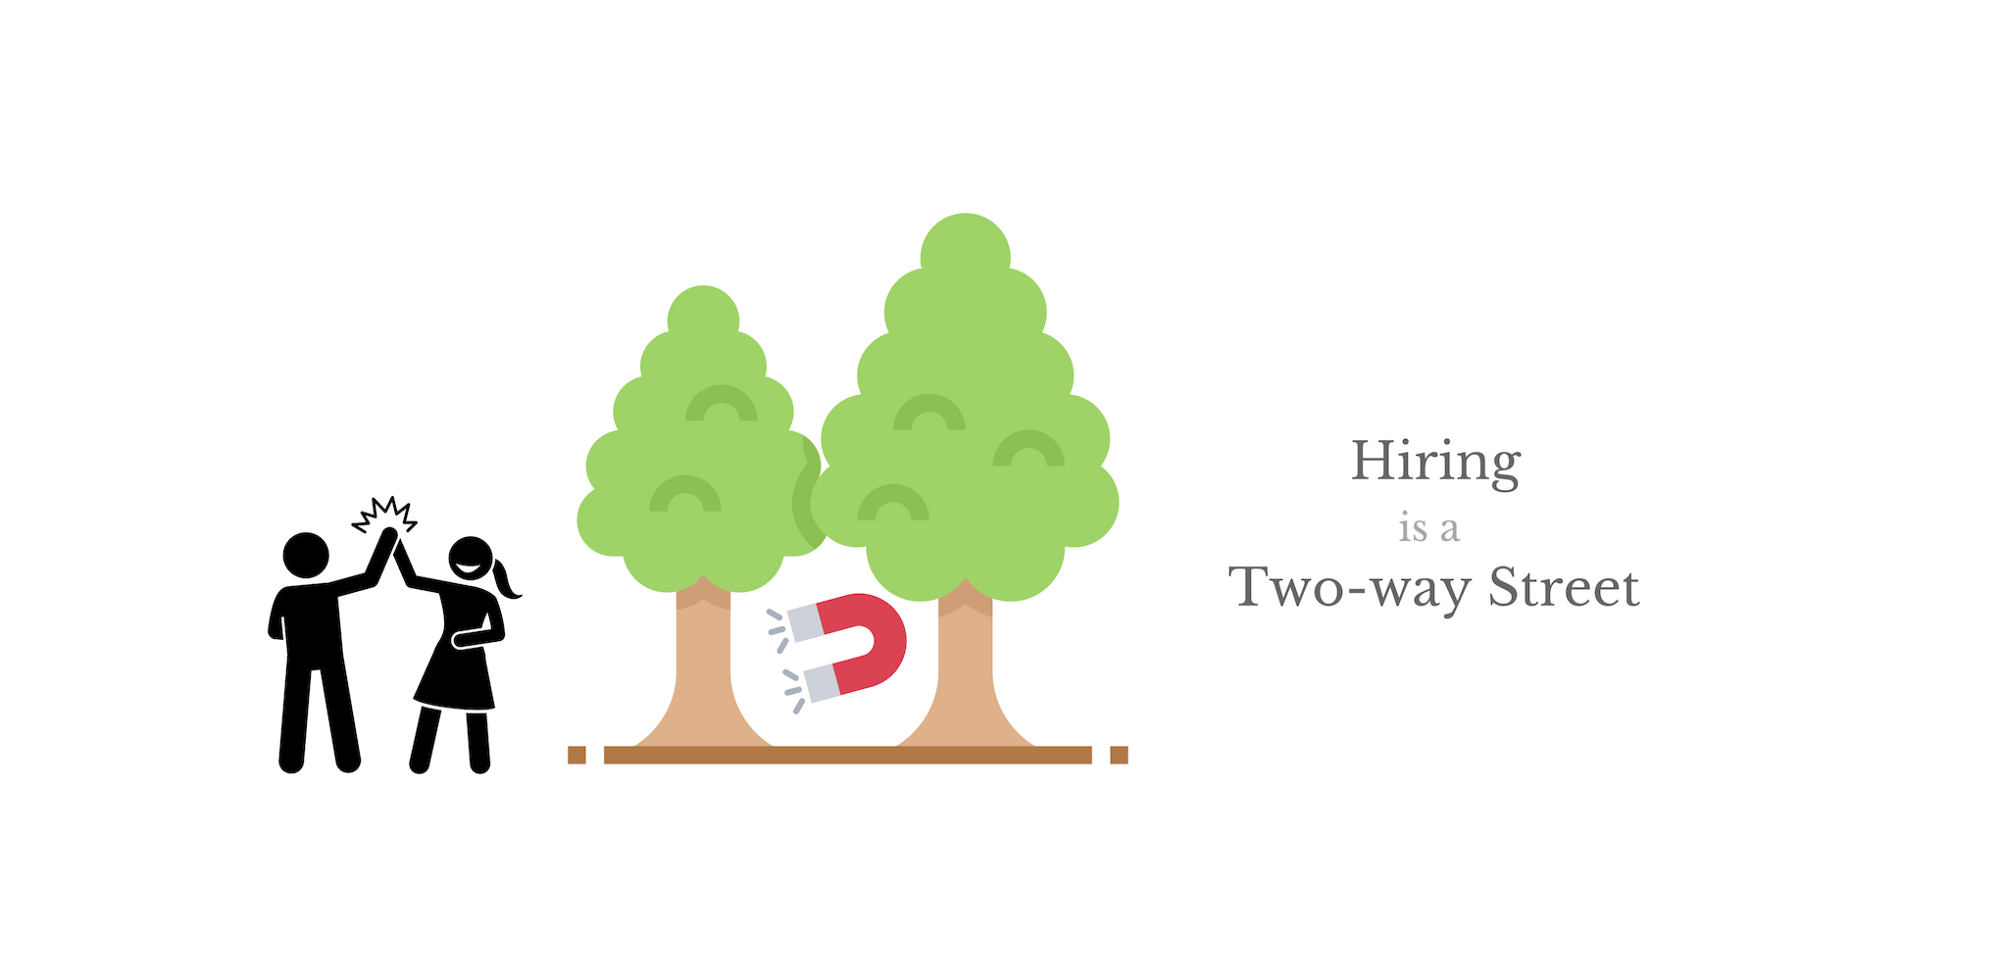 Hiring is a two-way street